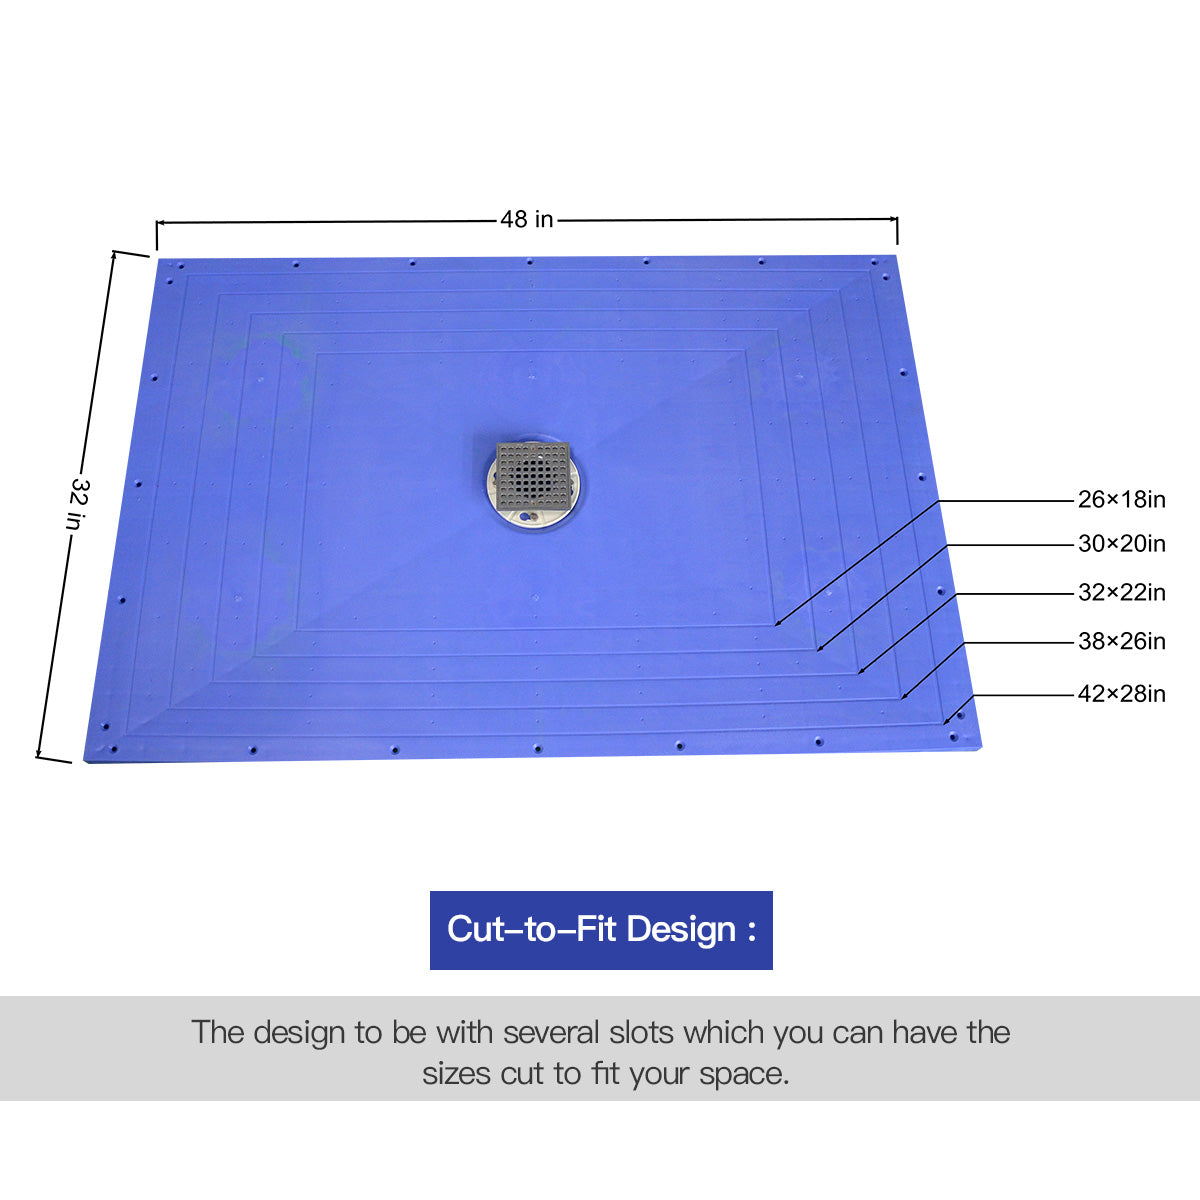 "Curbless Ready to Tile Shower Pan/Base Cut-to-Fit  48X32"" ABS Material with Fibreglass Reinforced"